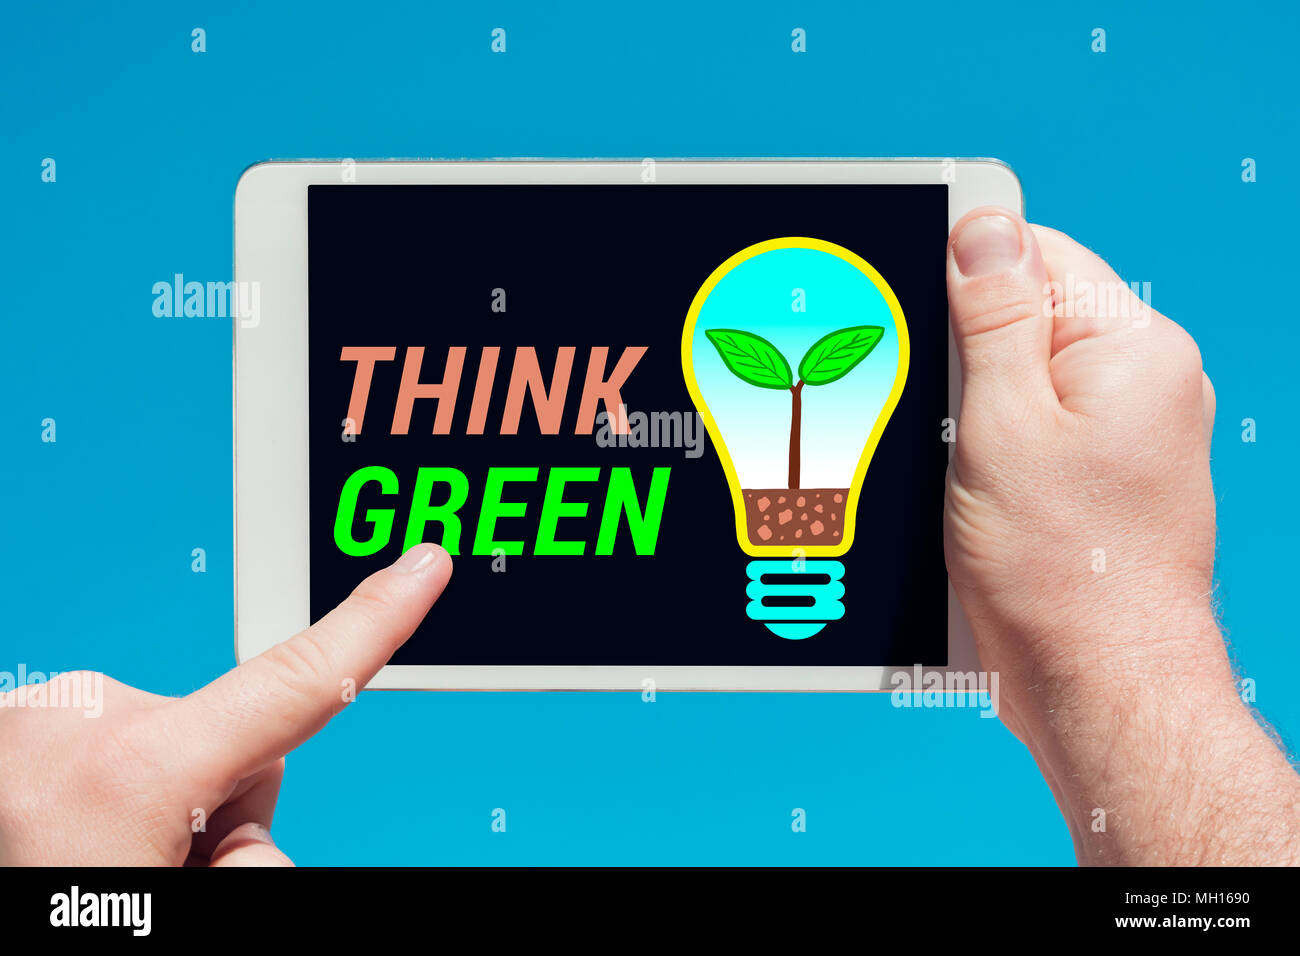 Ecoconcept man holding a tablet device with light bulb eco concept illustration